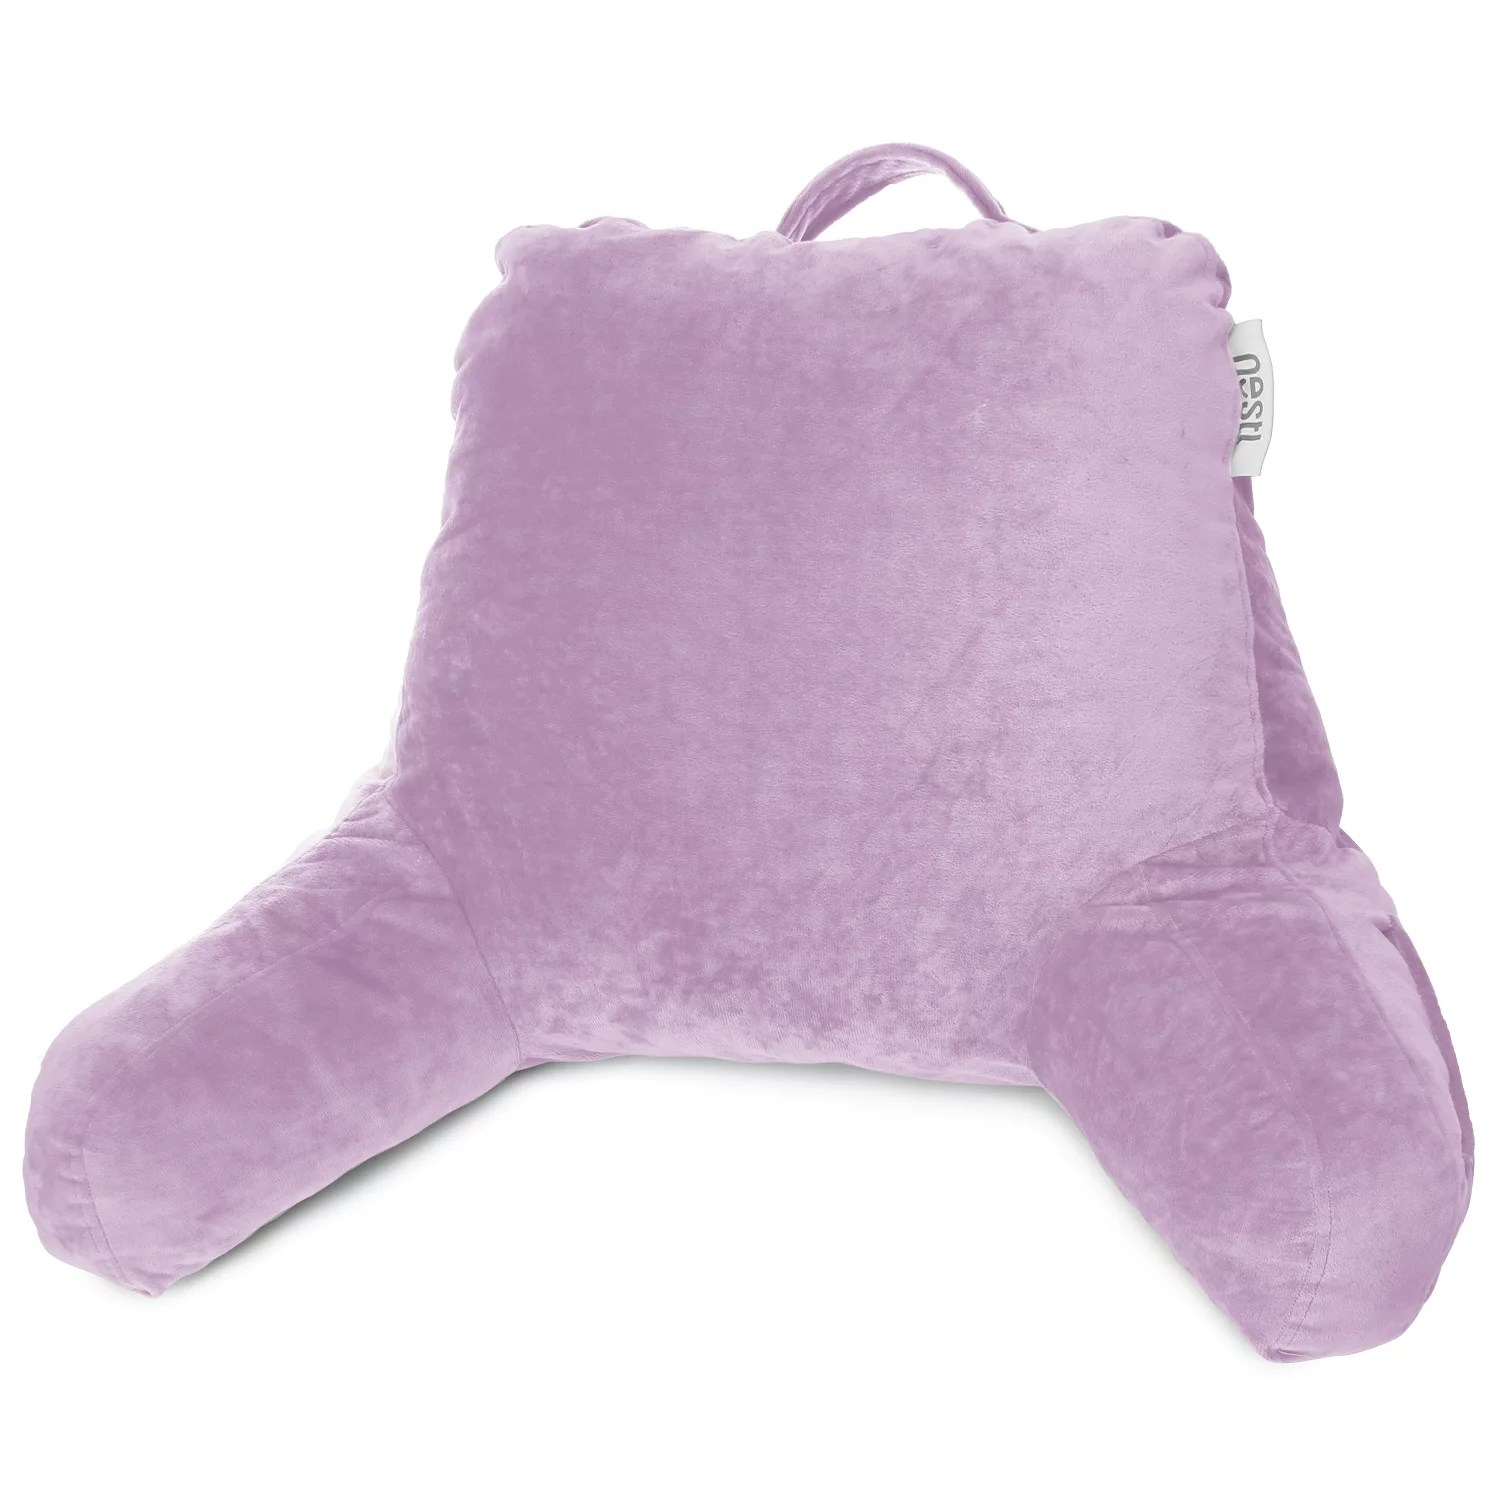 nestl reading pillow medium bed rest pillow with arms for kids teens adults premium shredded memory foam tv pillow lavender purple